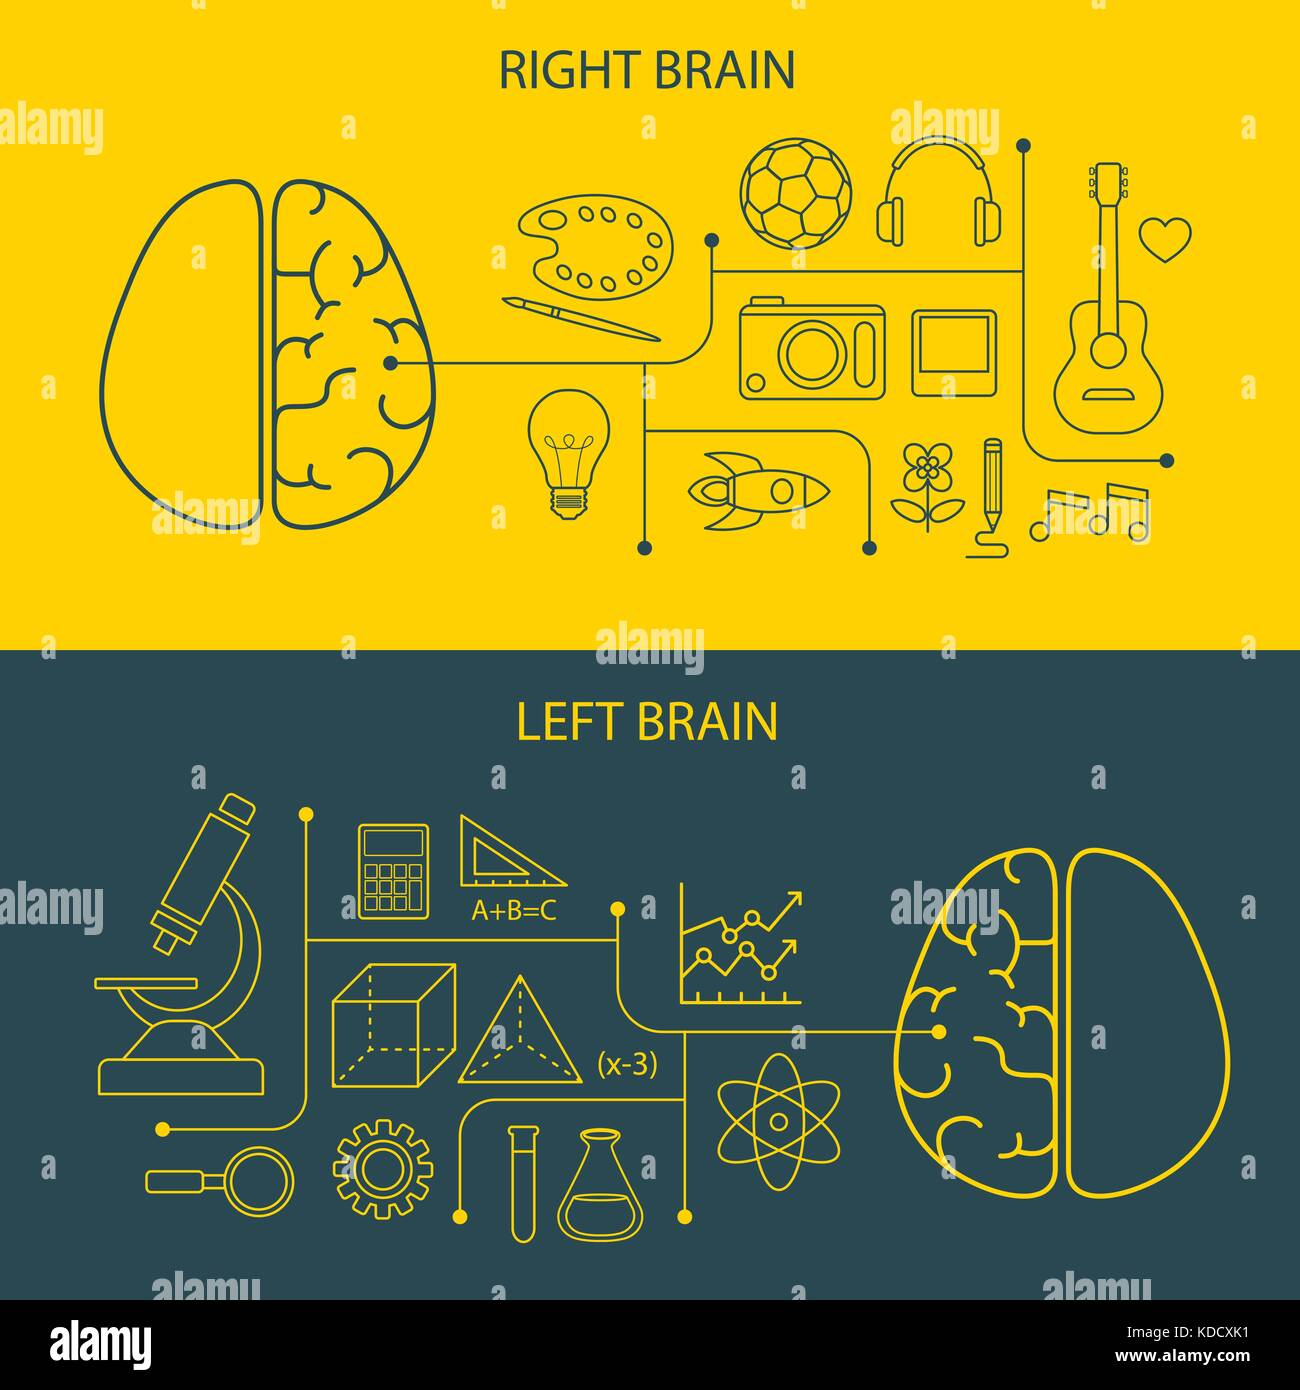 left and right brain functions concept - Stock Image